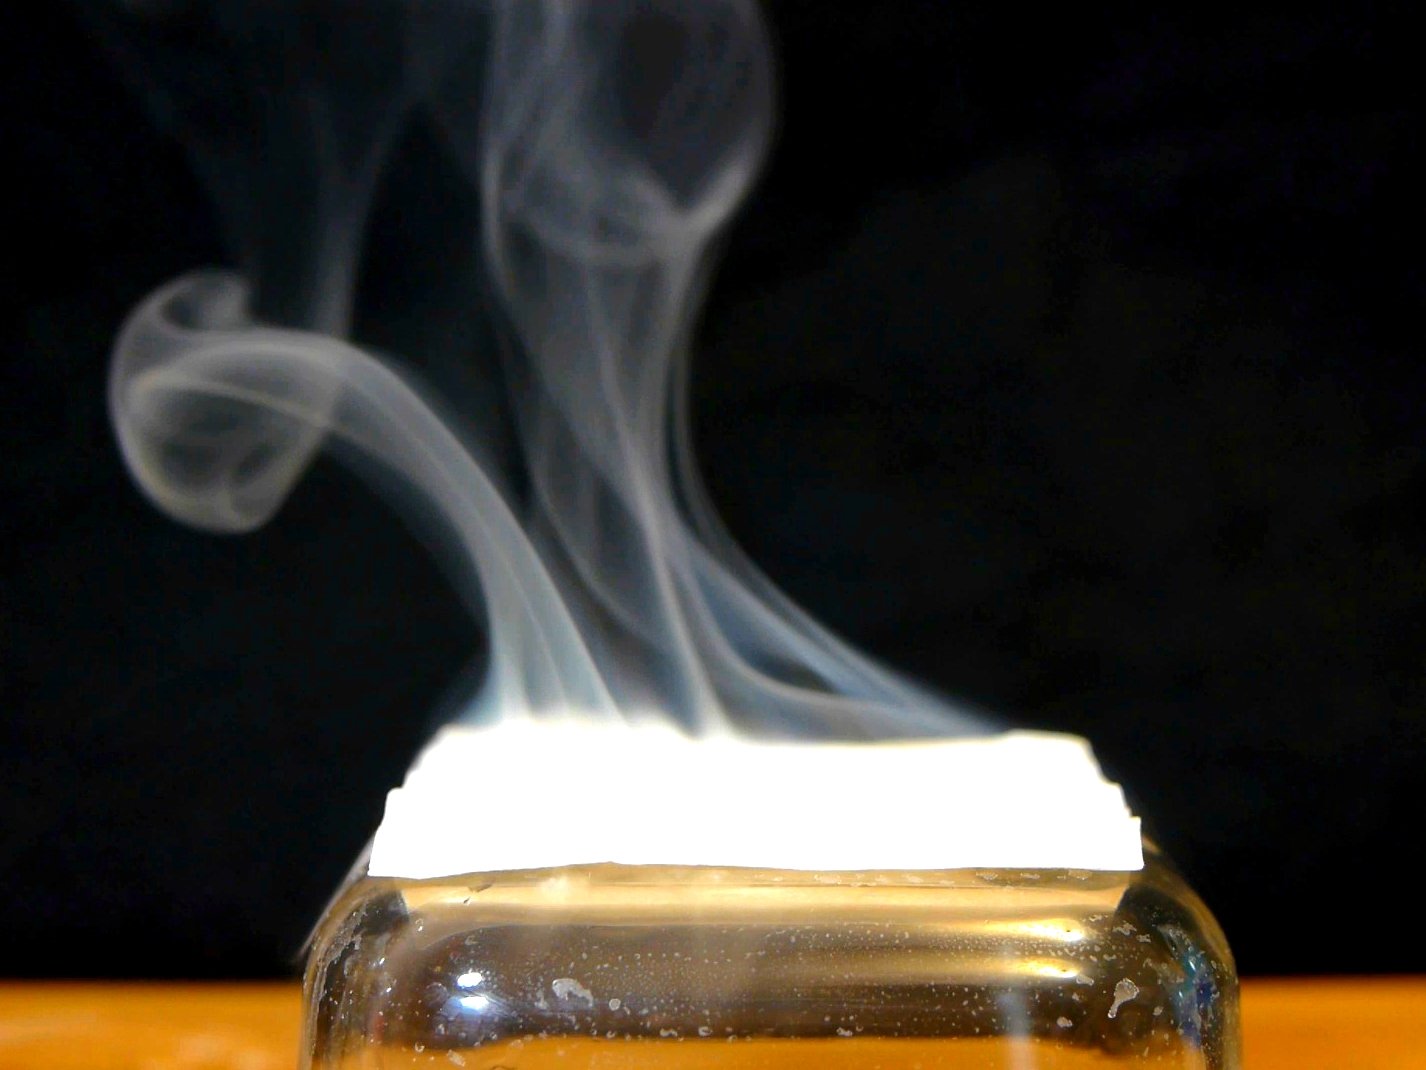 Make Smoke Without Heat Using Common Chemicals